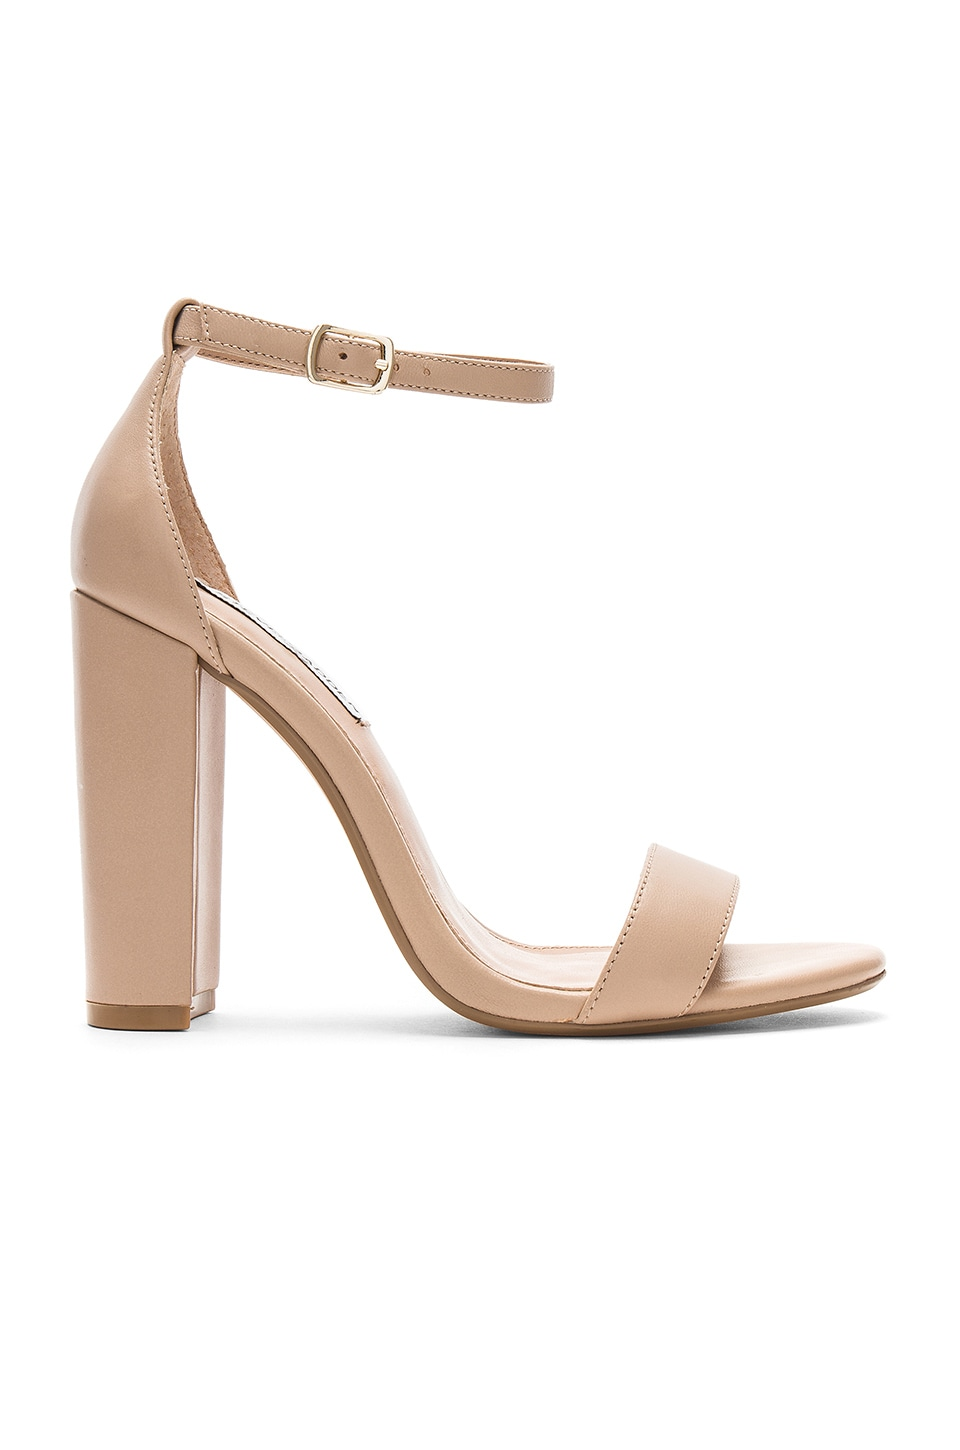 Steve Madden Carrson Sandal in Blush Leather